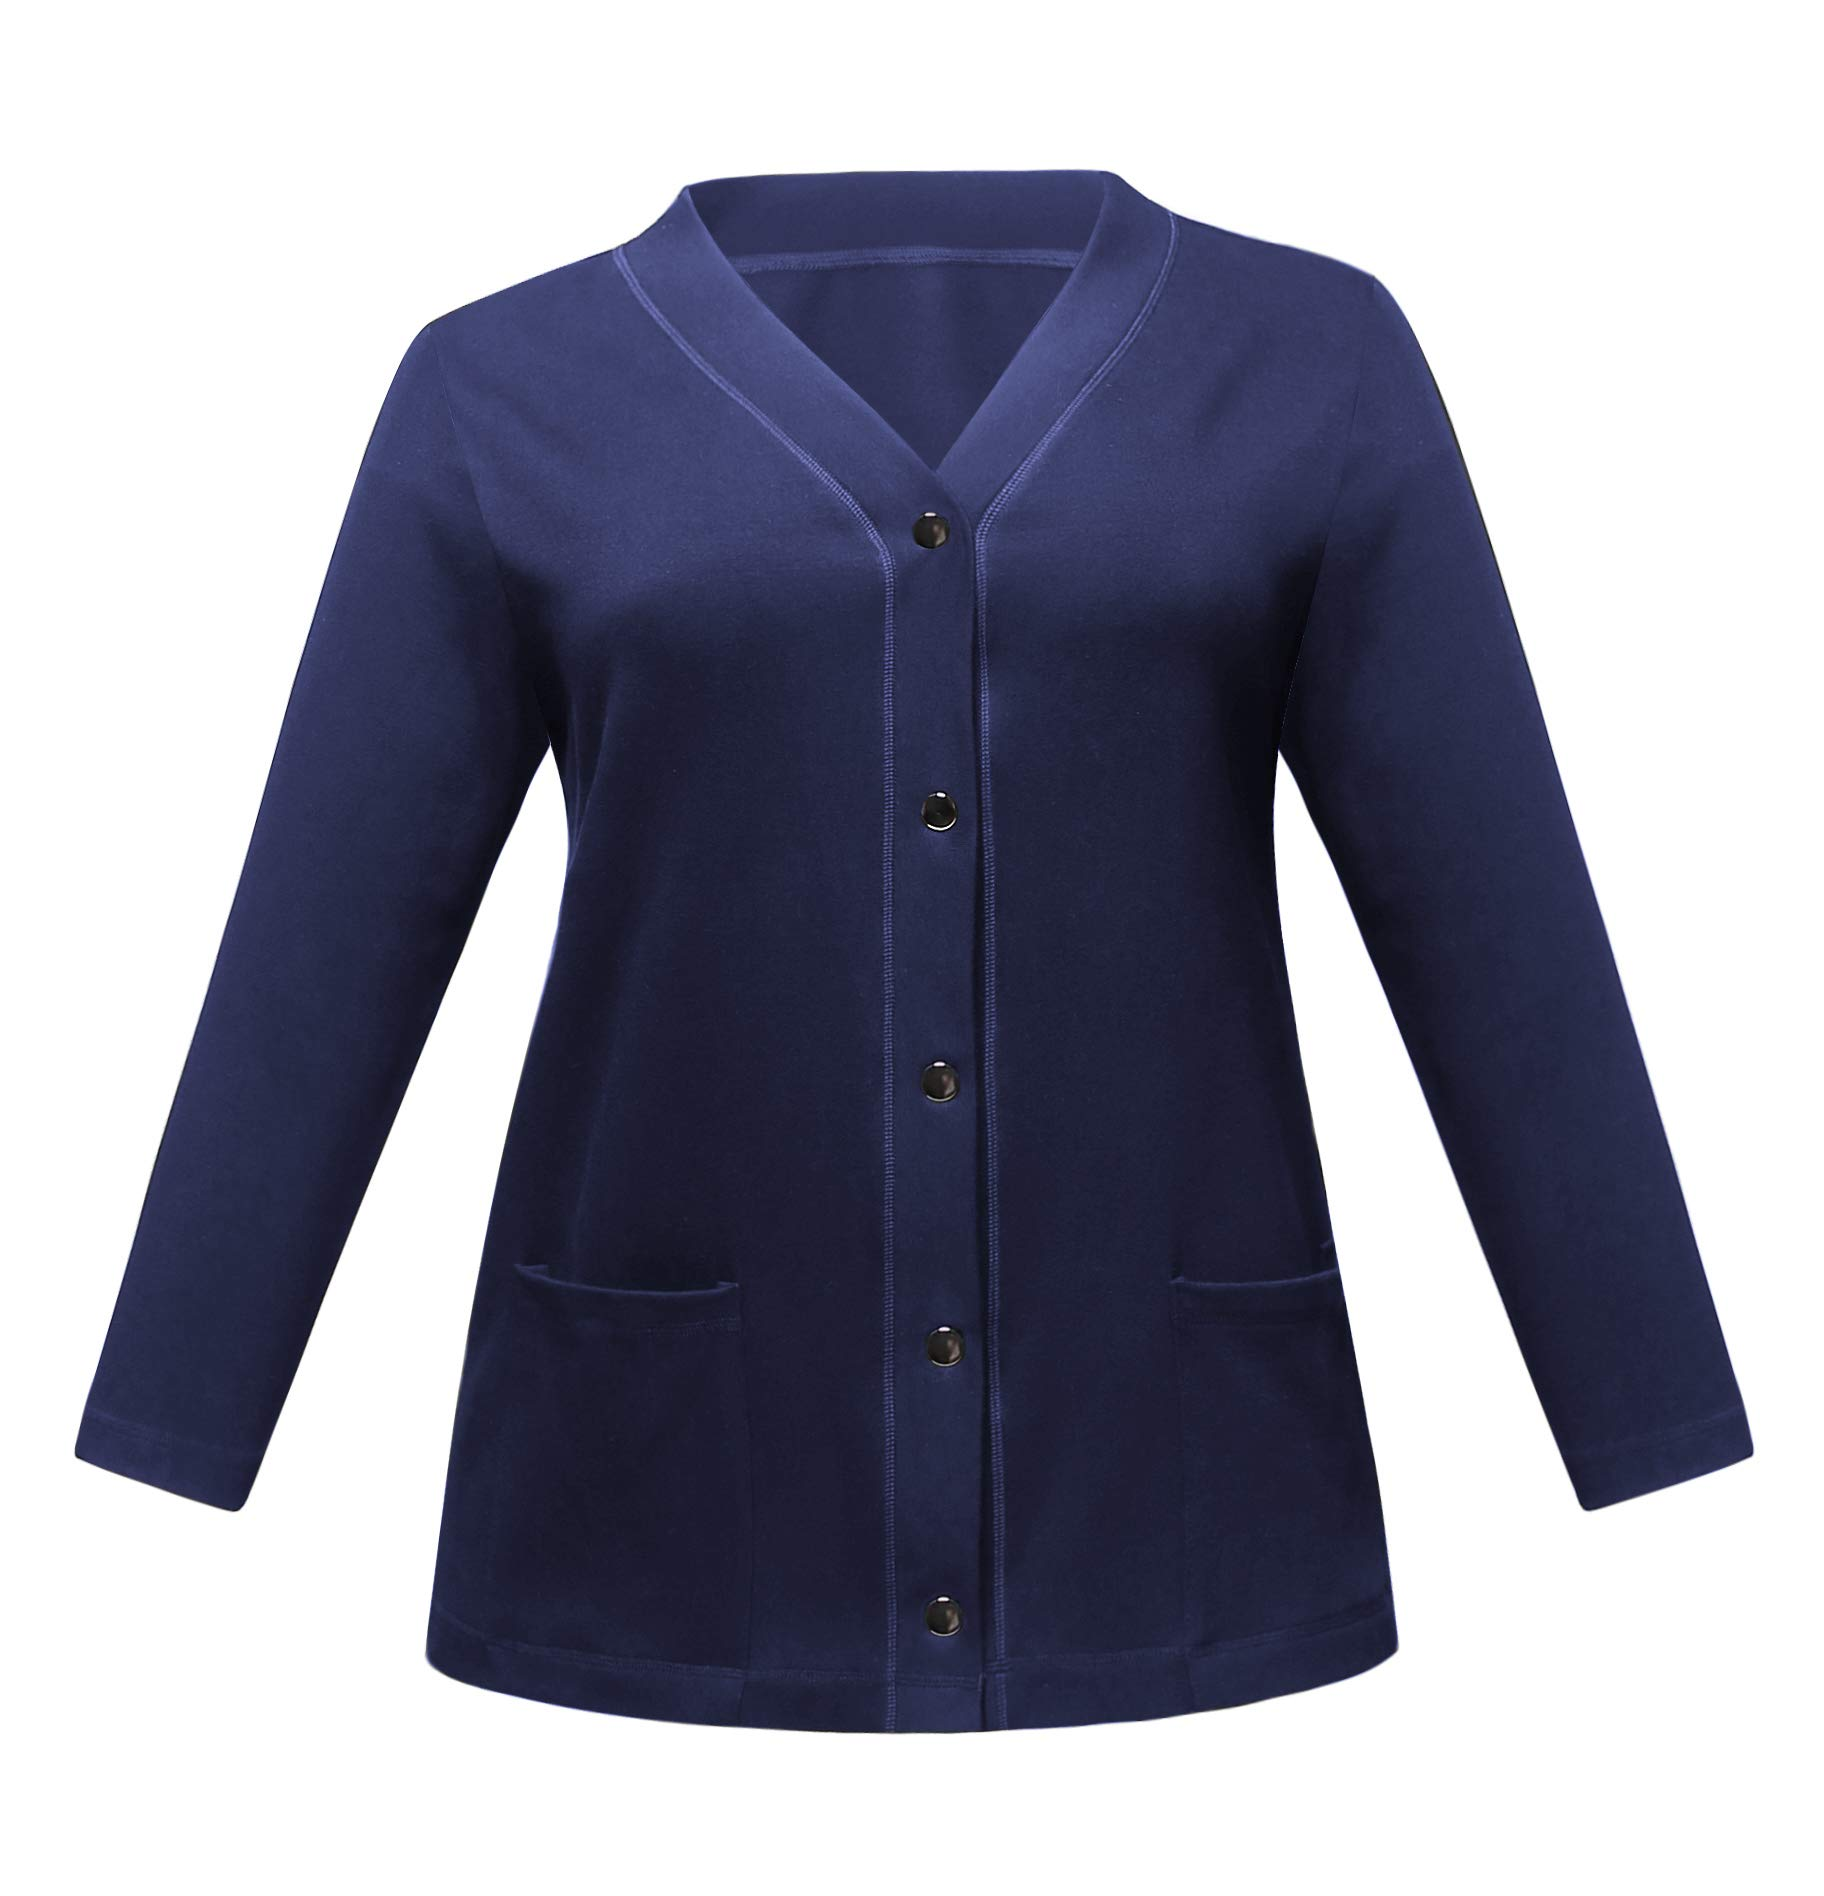 ZERDOCEAN Women's Plus Size V-Neck Snap Button Cardigan Sweater Soft Cotton Knit Long Sleeve with Pockets